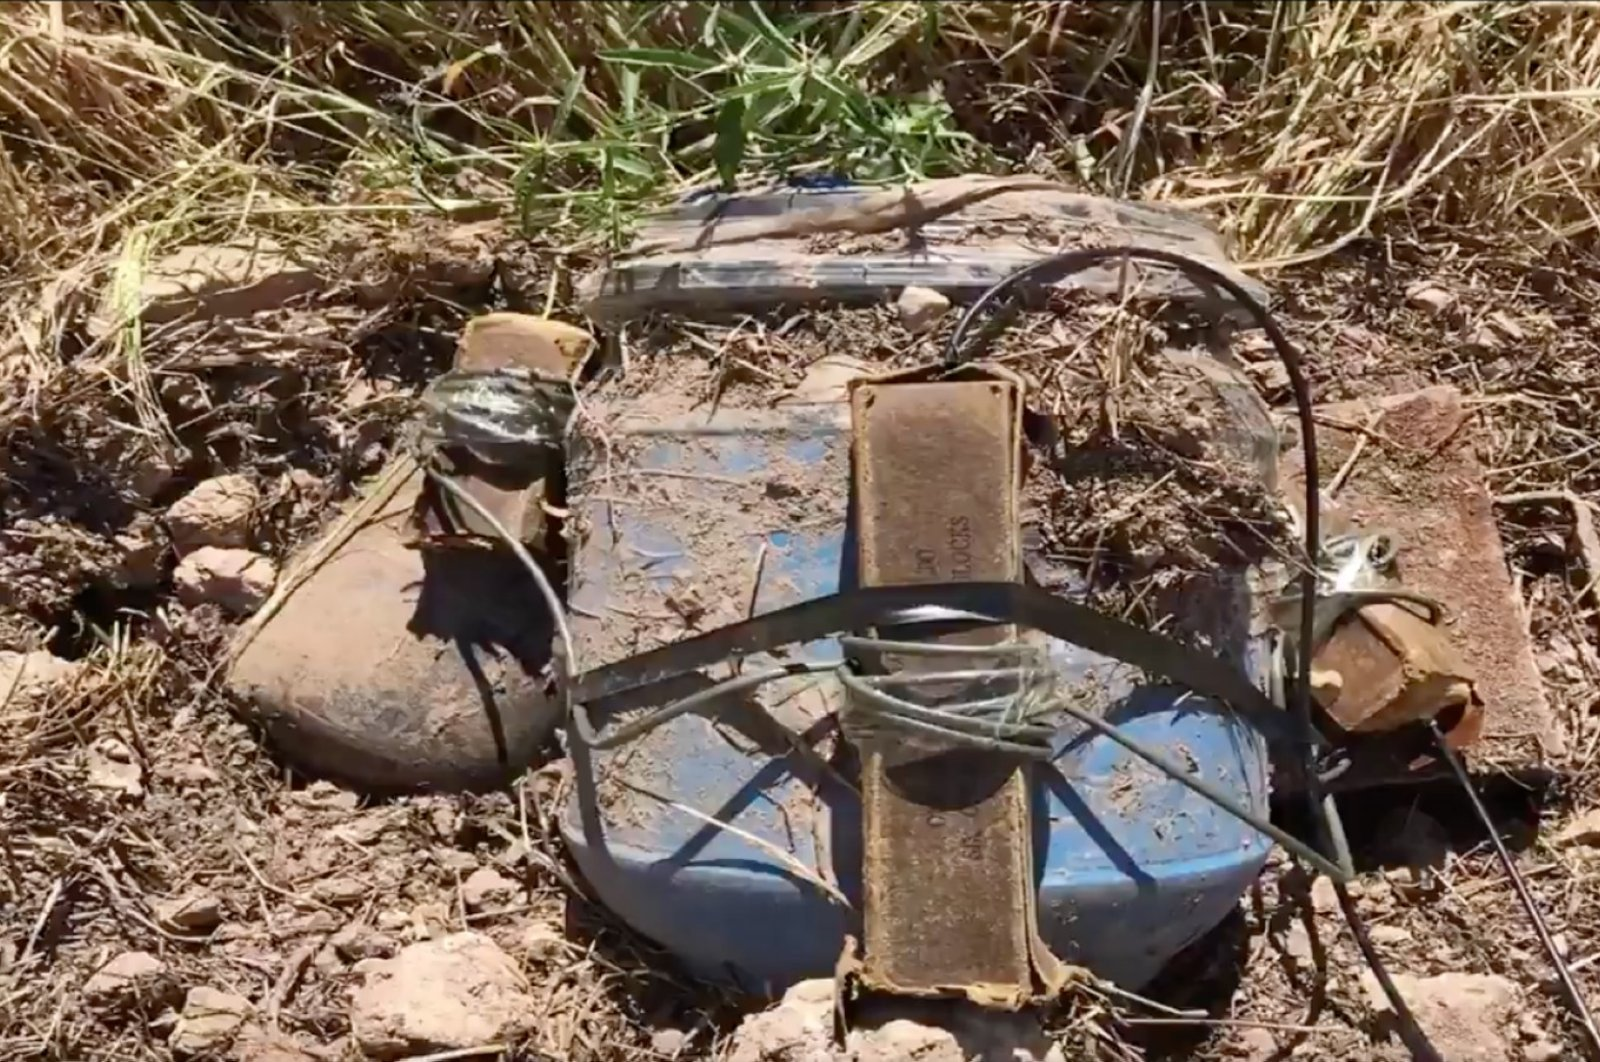 Explosives planted by the YPG/PKK terror group were seized in an area falling inside the region delineated as part of Turkey's Operation Peace Spring in northern Syria, May 11, 2020. (AA Photo)